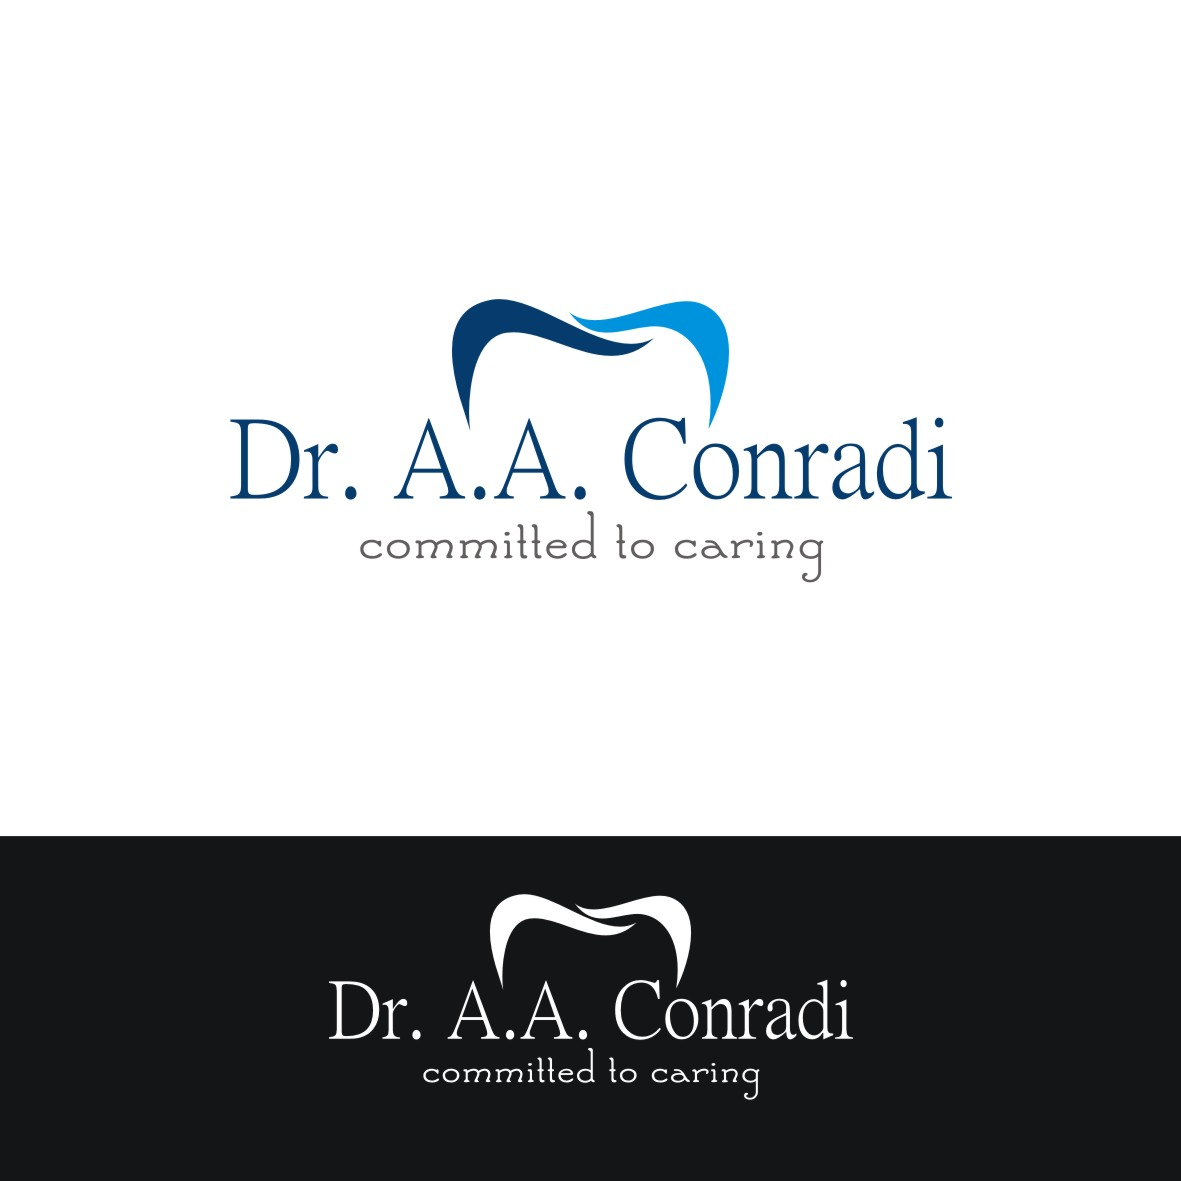 Logo Design by arteo_design - Entry No. 51 in the Logo Design Contest Unique Logo Design Wanted for Dr. A.A. Conradi.